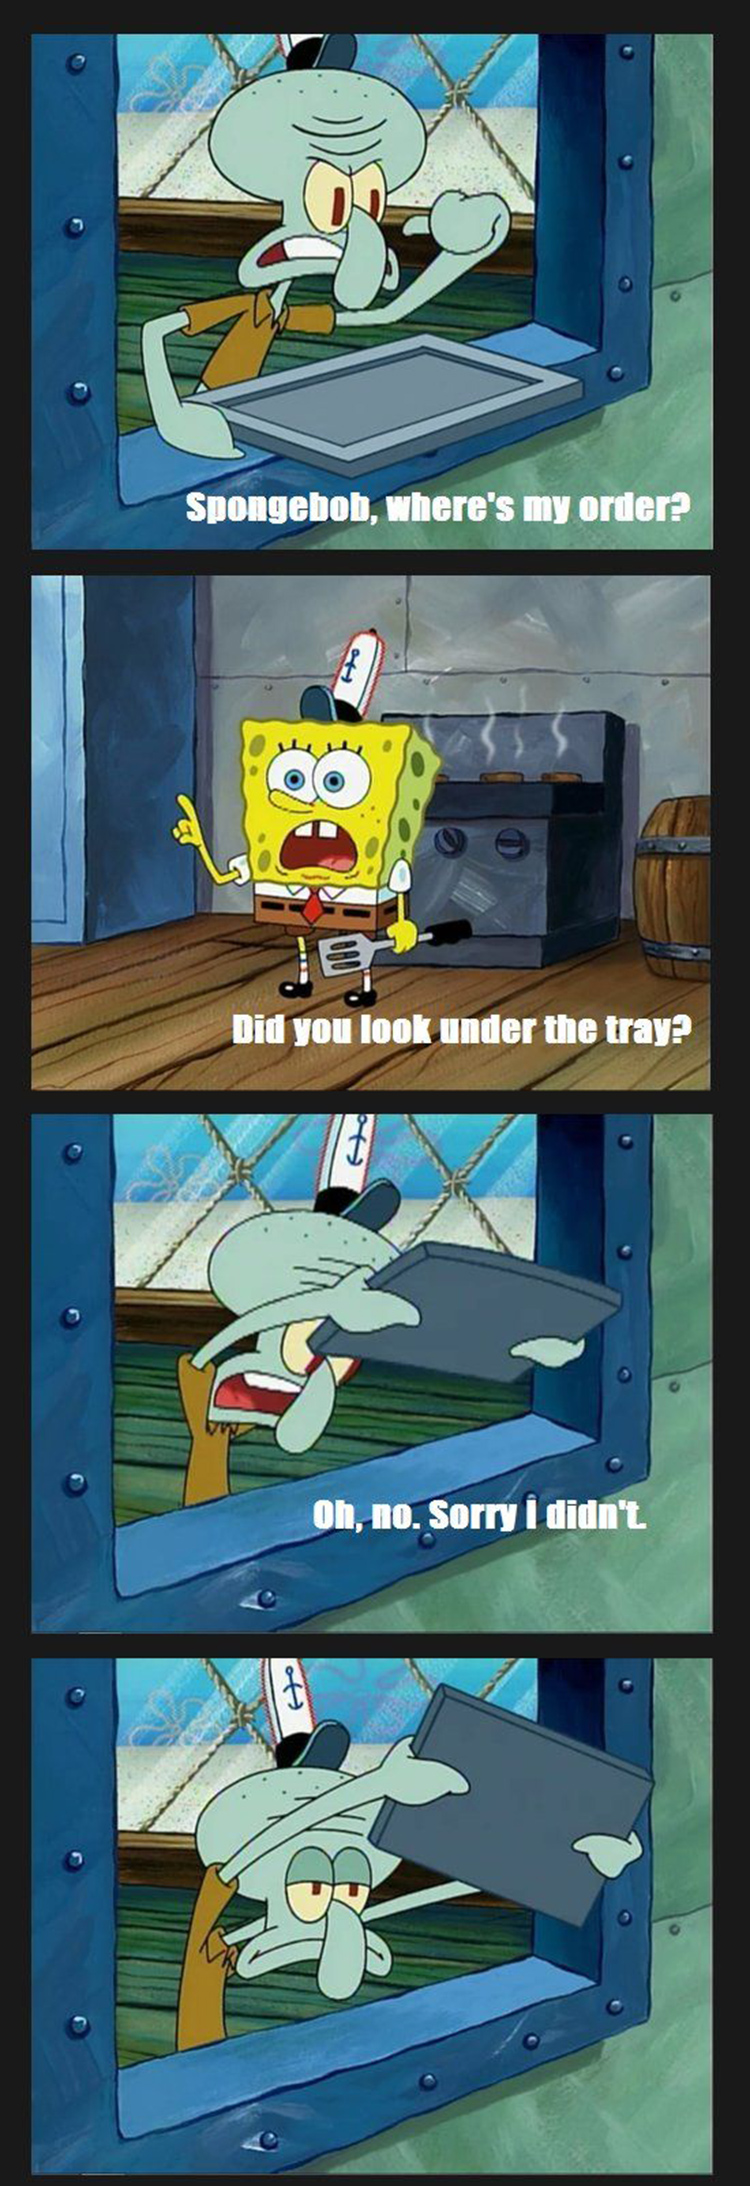 Squidward, did you look under the tray?